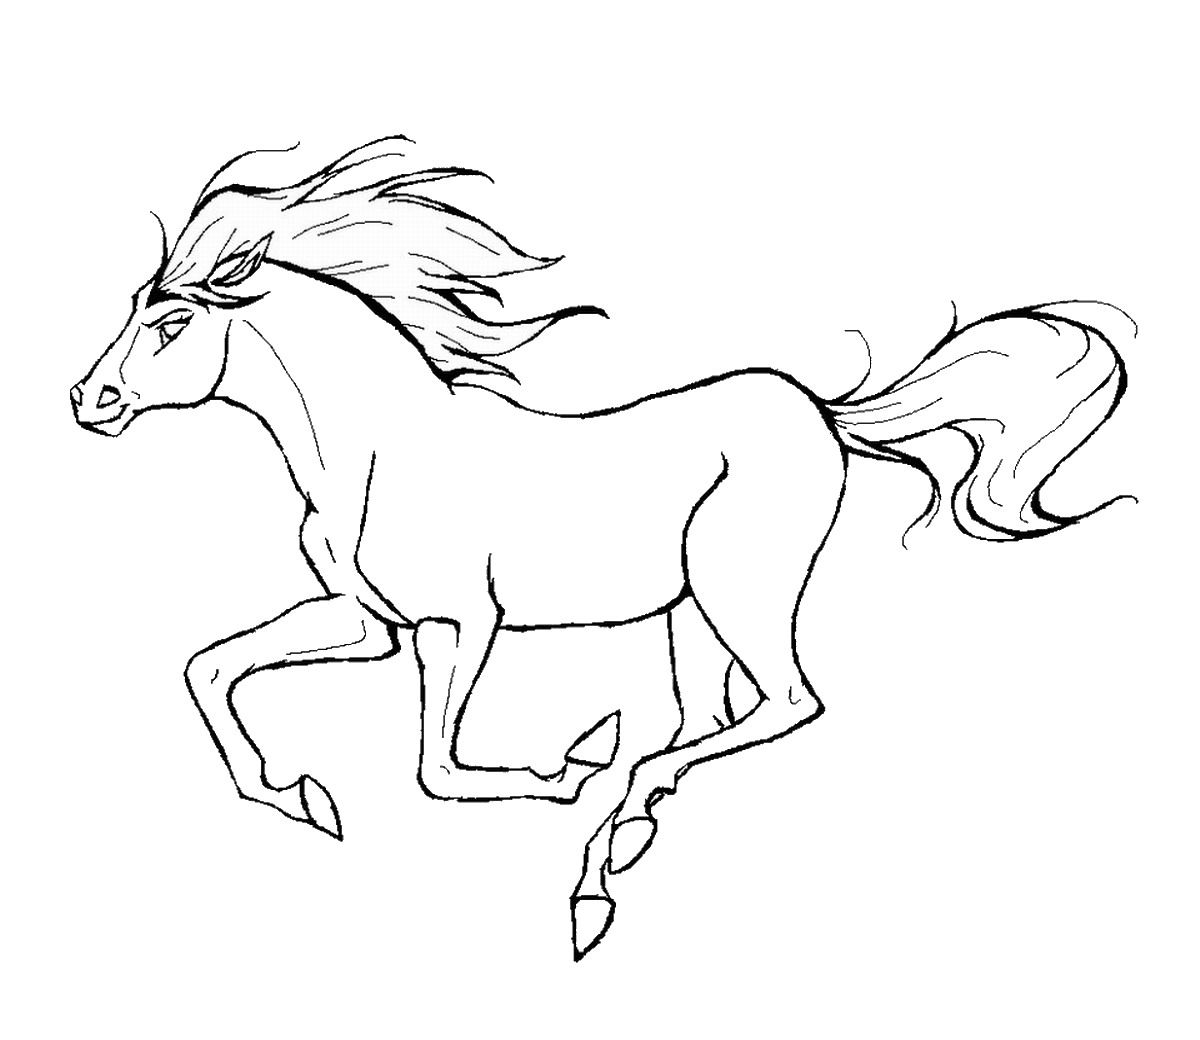 printable horse colouring pages horse coloring pages to download and print for free colouring printable horse pages